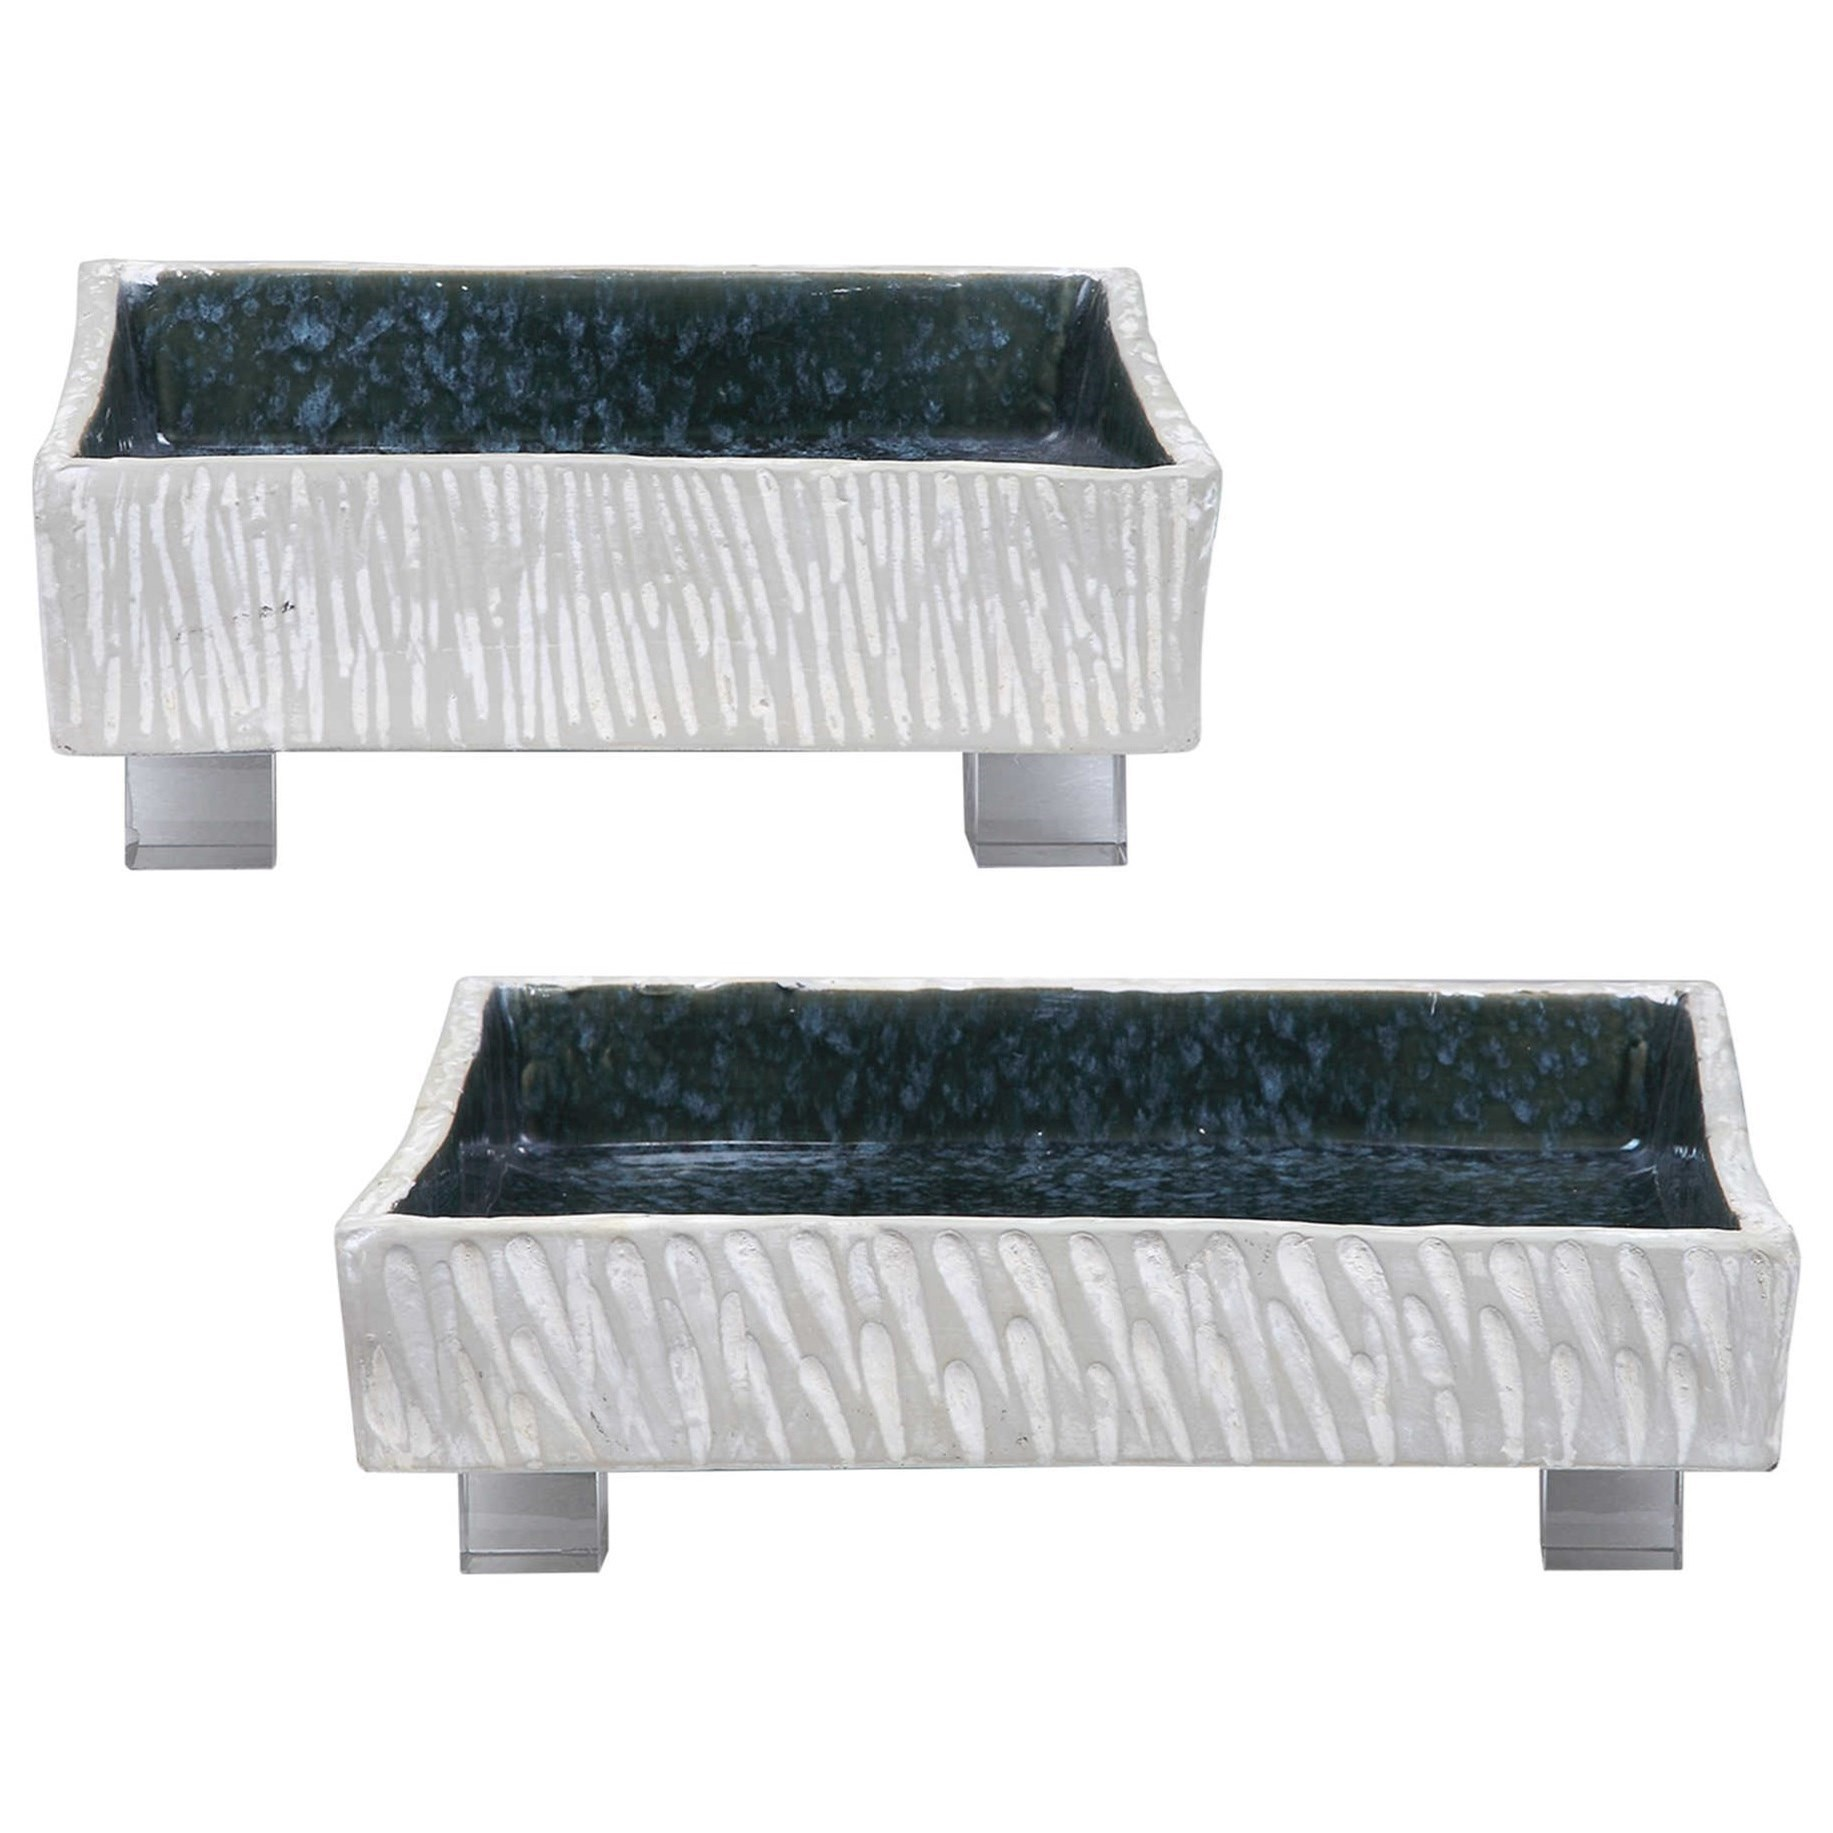 Accessories Ambretta Square Bowls, S/2 by Uttermost at Del Sol Furniture